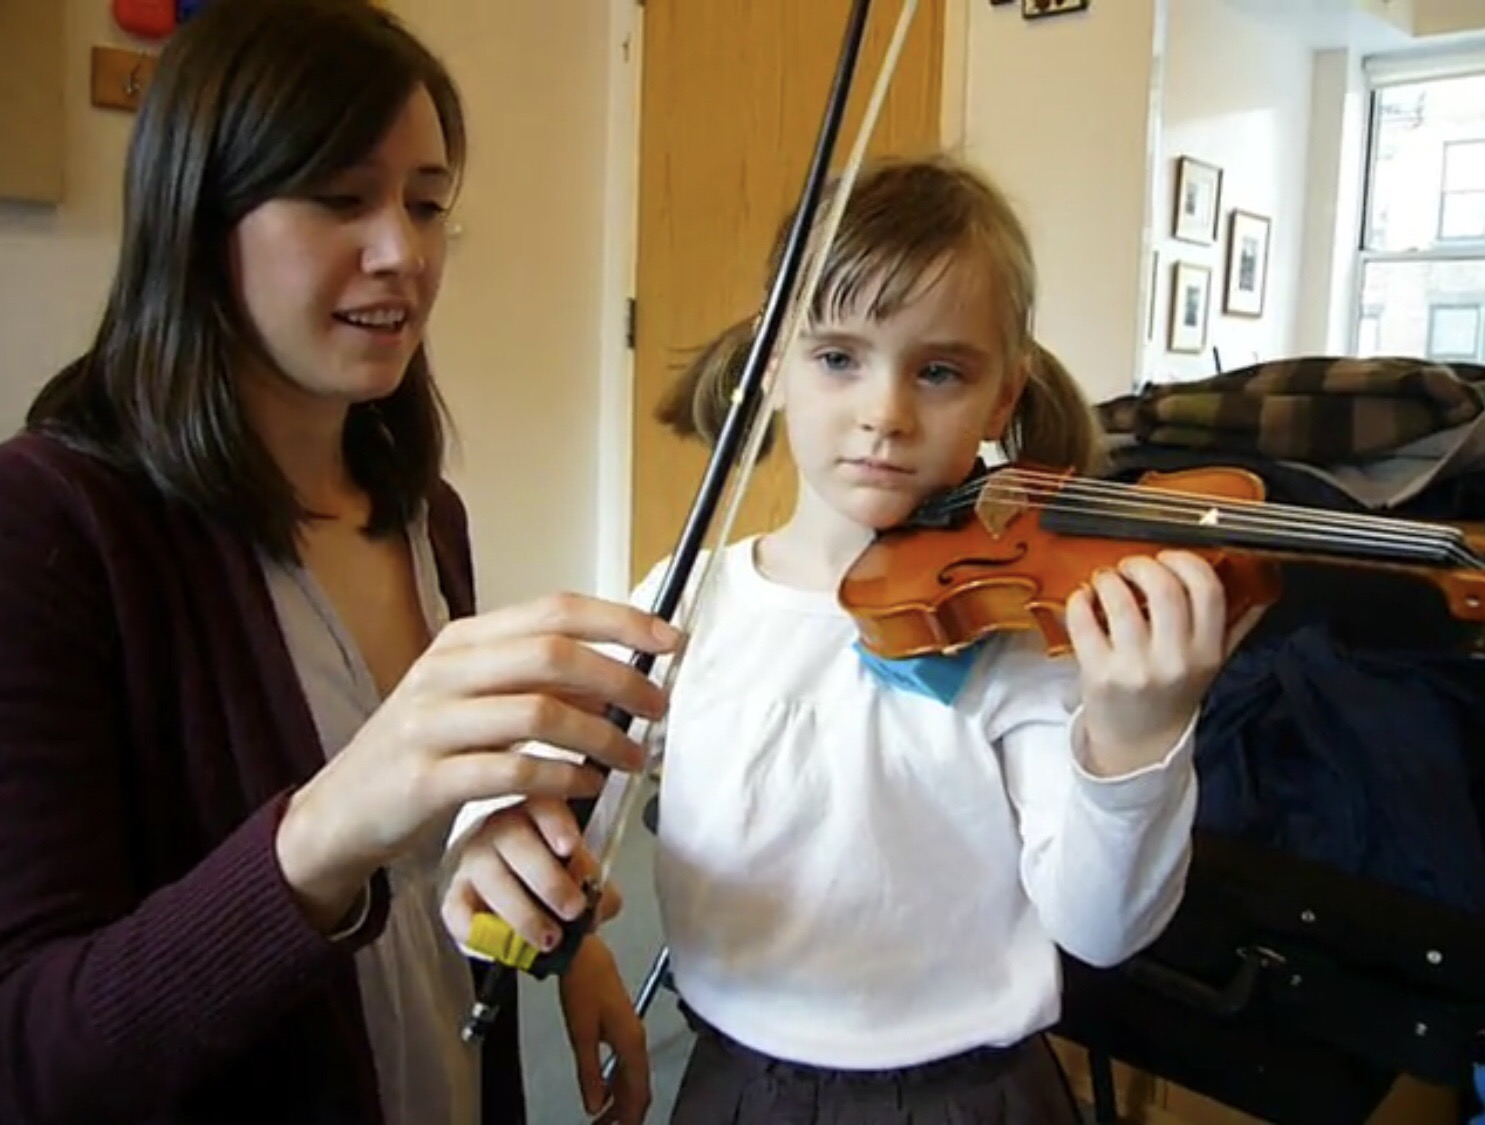 Currently accepting violin students starting at age 5 - Morganne has ten years of experience teaching violin in a one-on-one setting to students of all ages. She holds teacher certification in Suzuki Books 1 - 10, training in the Dalcroze and Orff approaches, and mentored with Dr. Ann Setzer of the Juilliard pre-college. Morganne is currently accepting students into her studio at the Indianapolis Suzuki Academy.